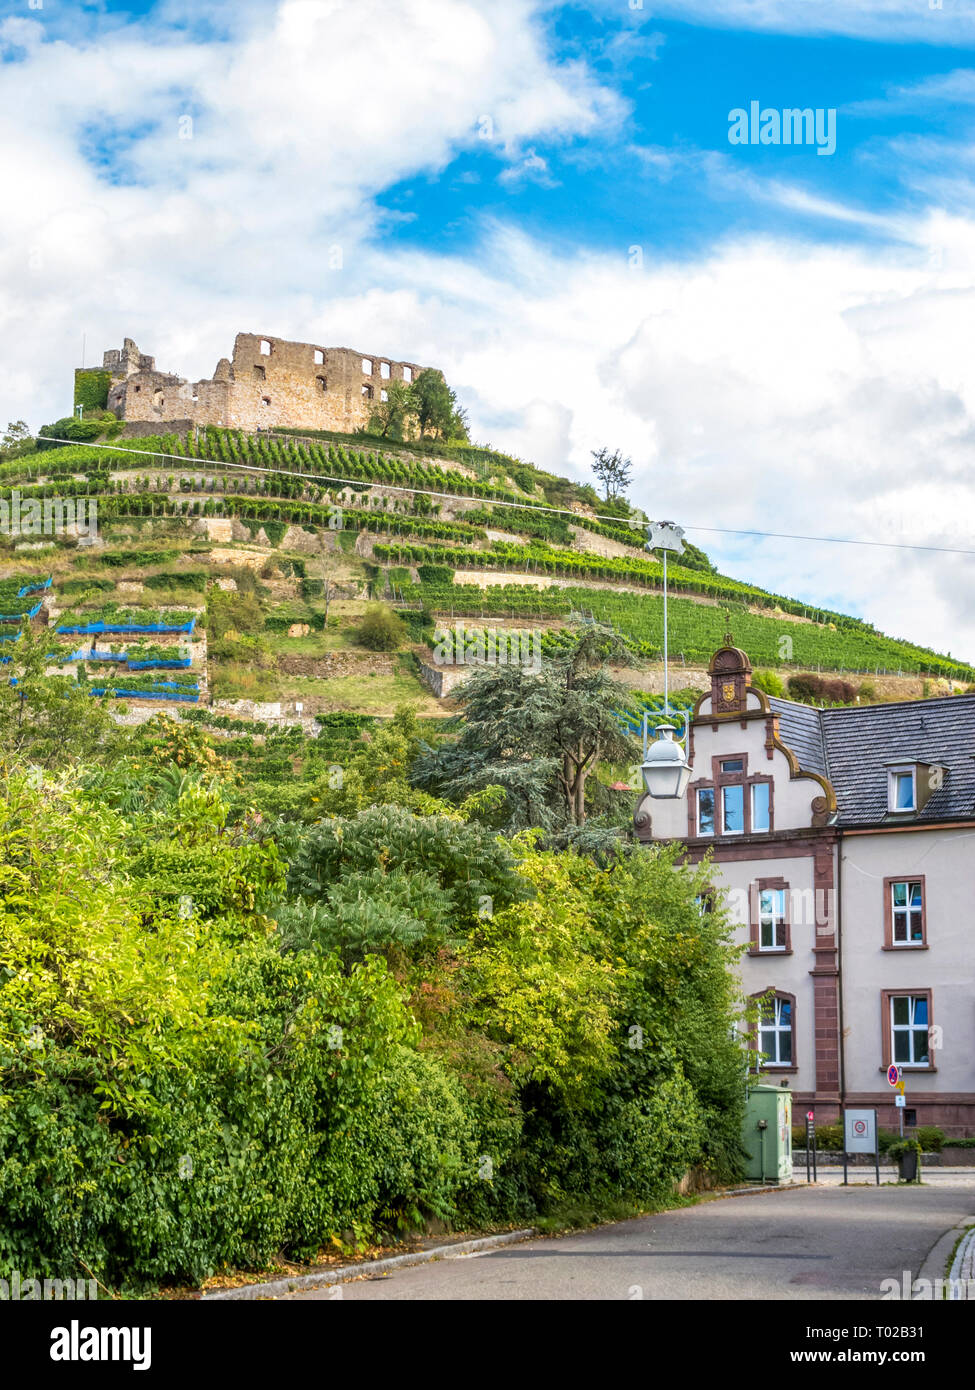 Staufen im Breisgau view of the old castle ruins and vineyard hills, Baden-Wuerttemberg, southwest Germany - Stock Image